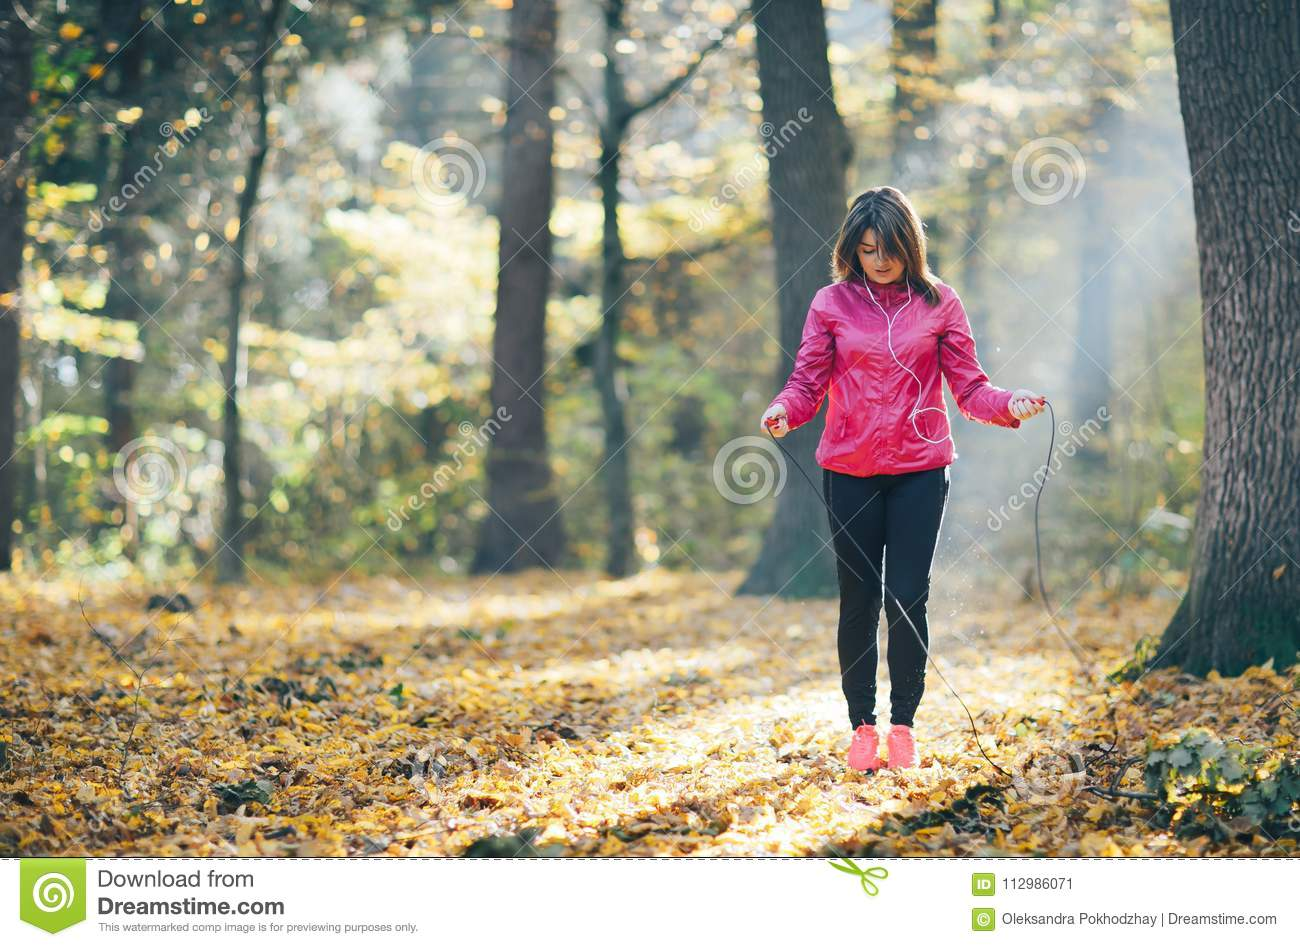 Girls who train and listen to music in the morning forest